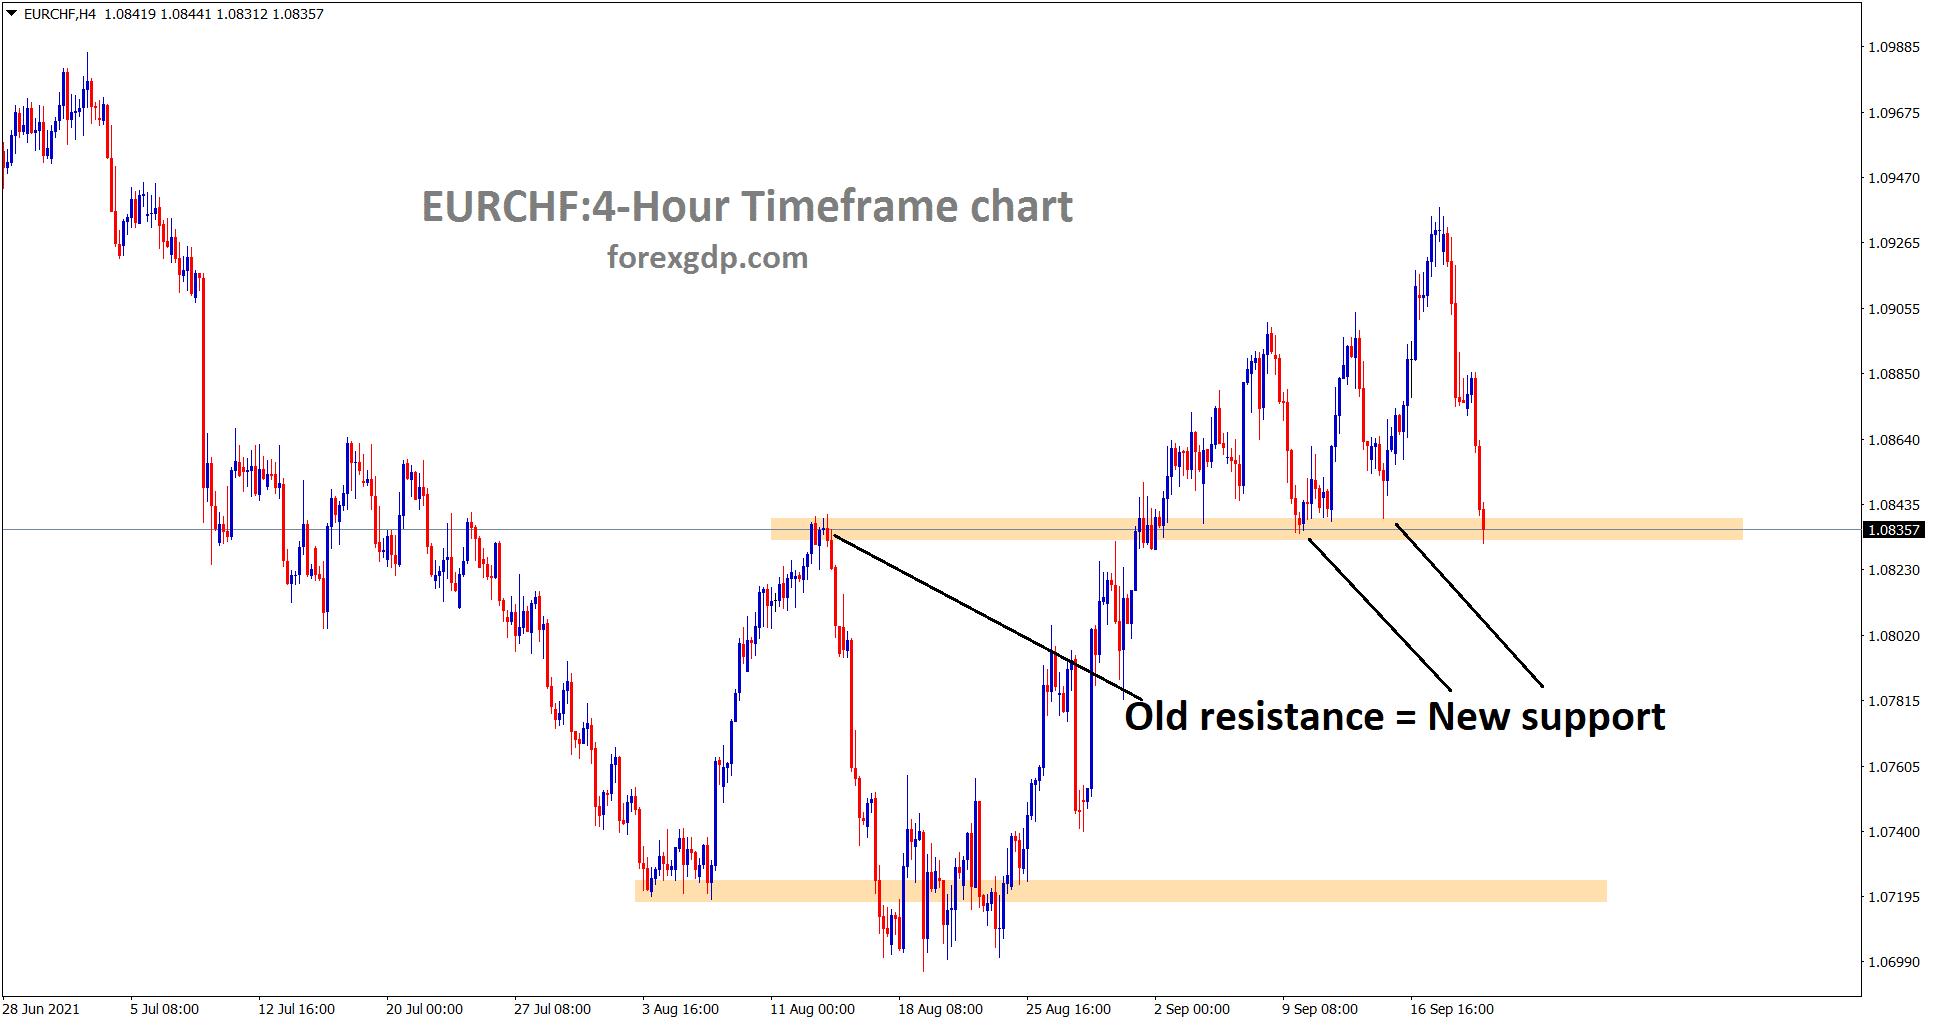 EURCHF has reached the old resistance area again which acted before as a support lets wait for reversal or breakout